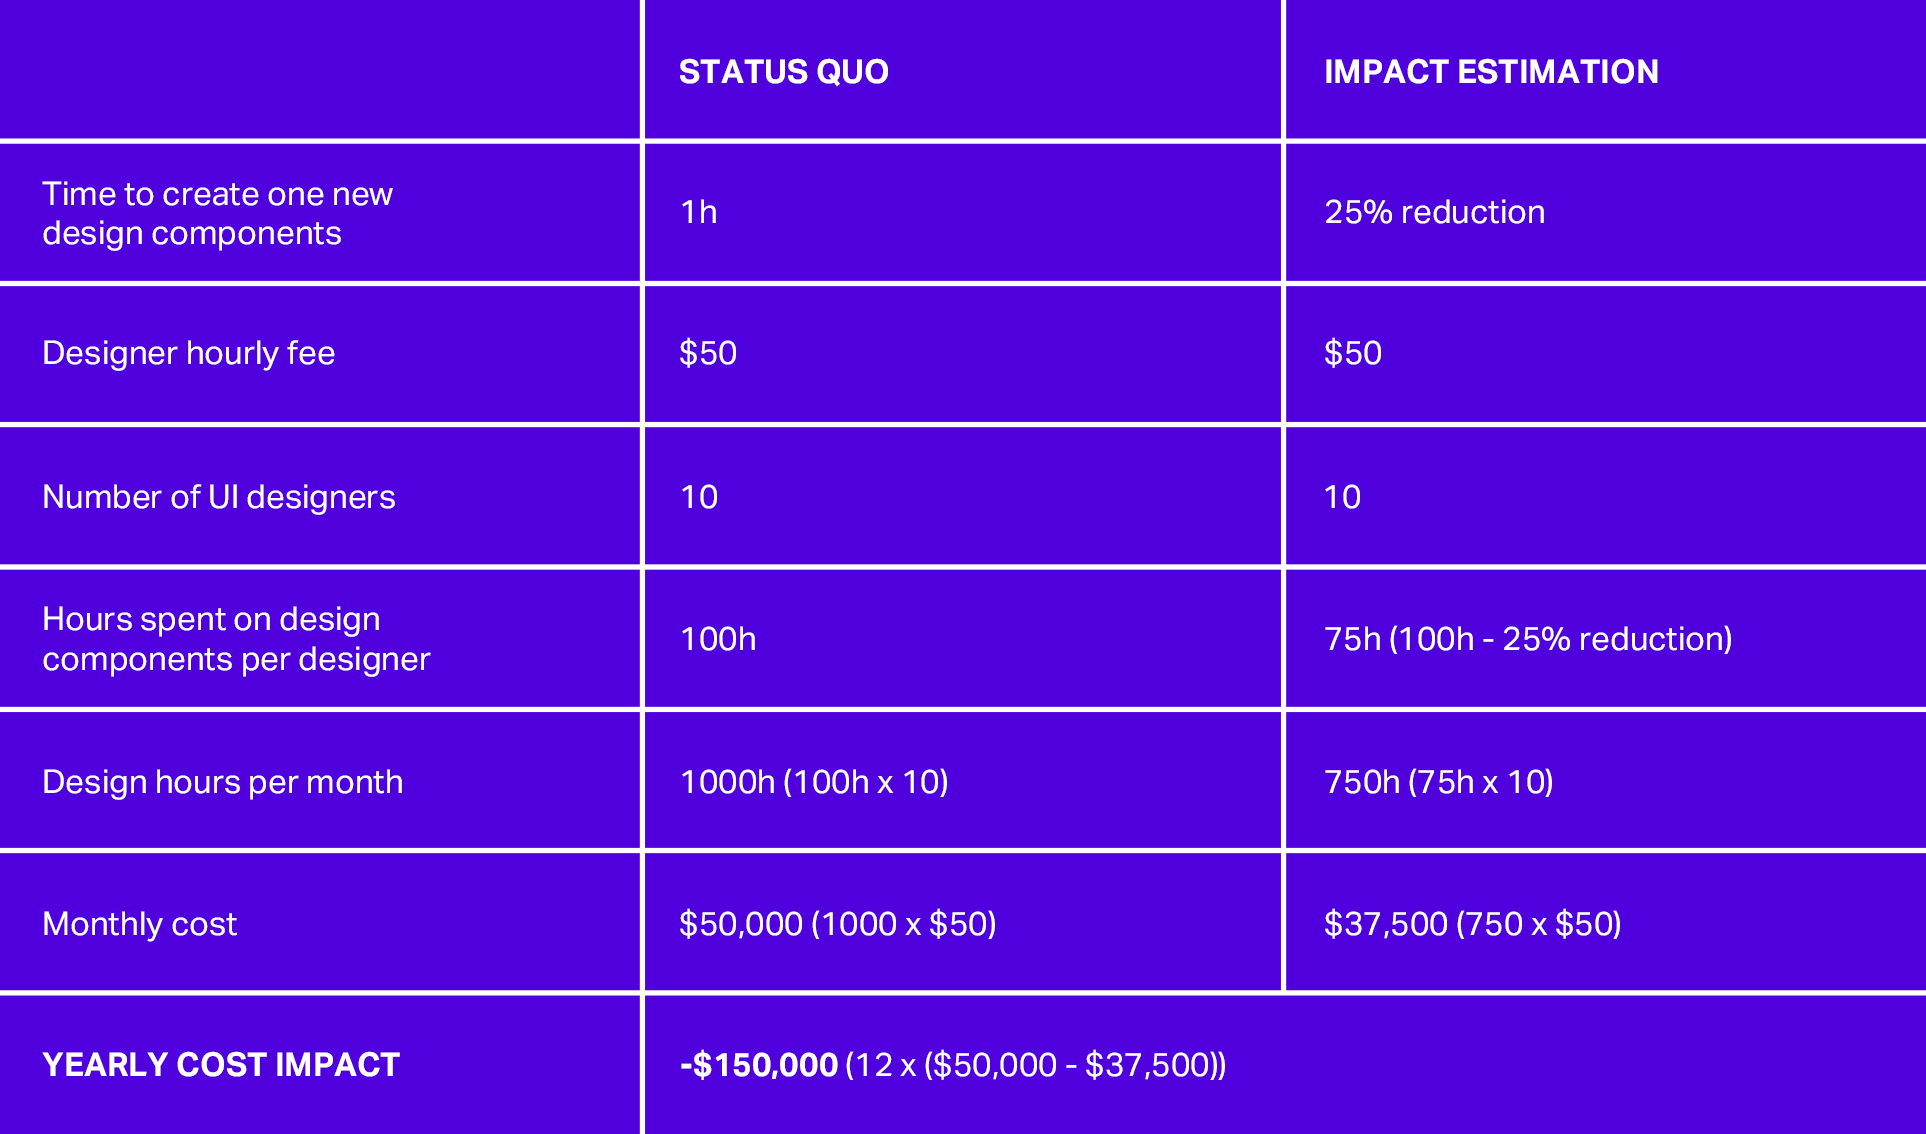 How a project could decrease costs. Credit (https://www.invisionapp.com/inside-design/estimate-roi-design-work/)